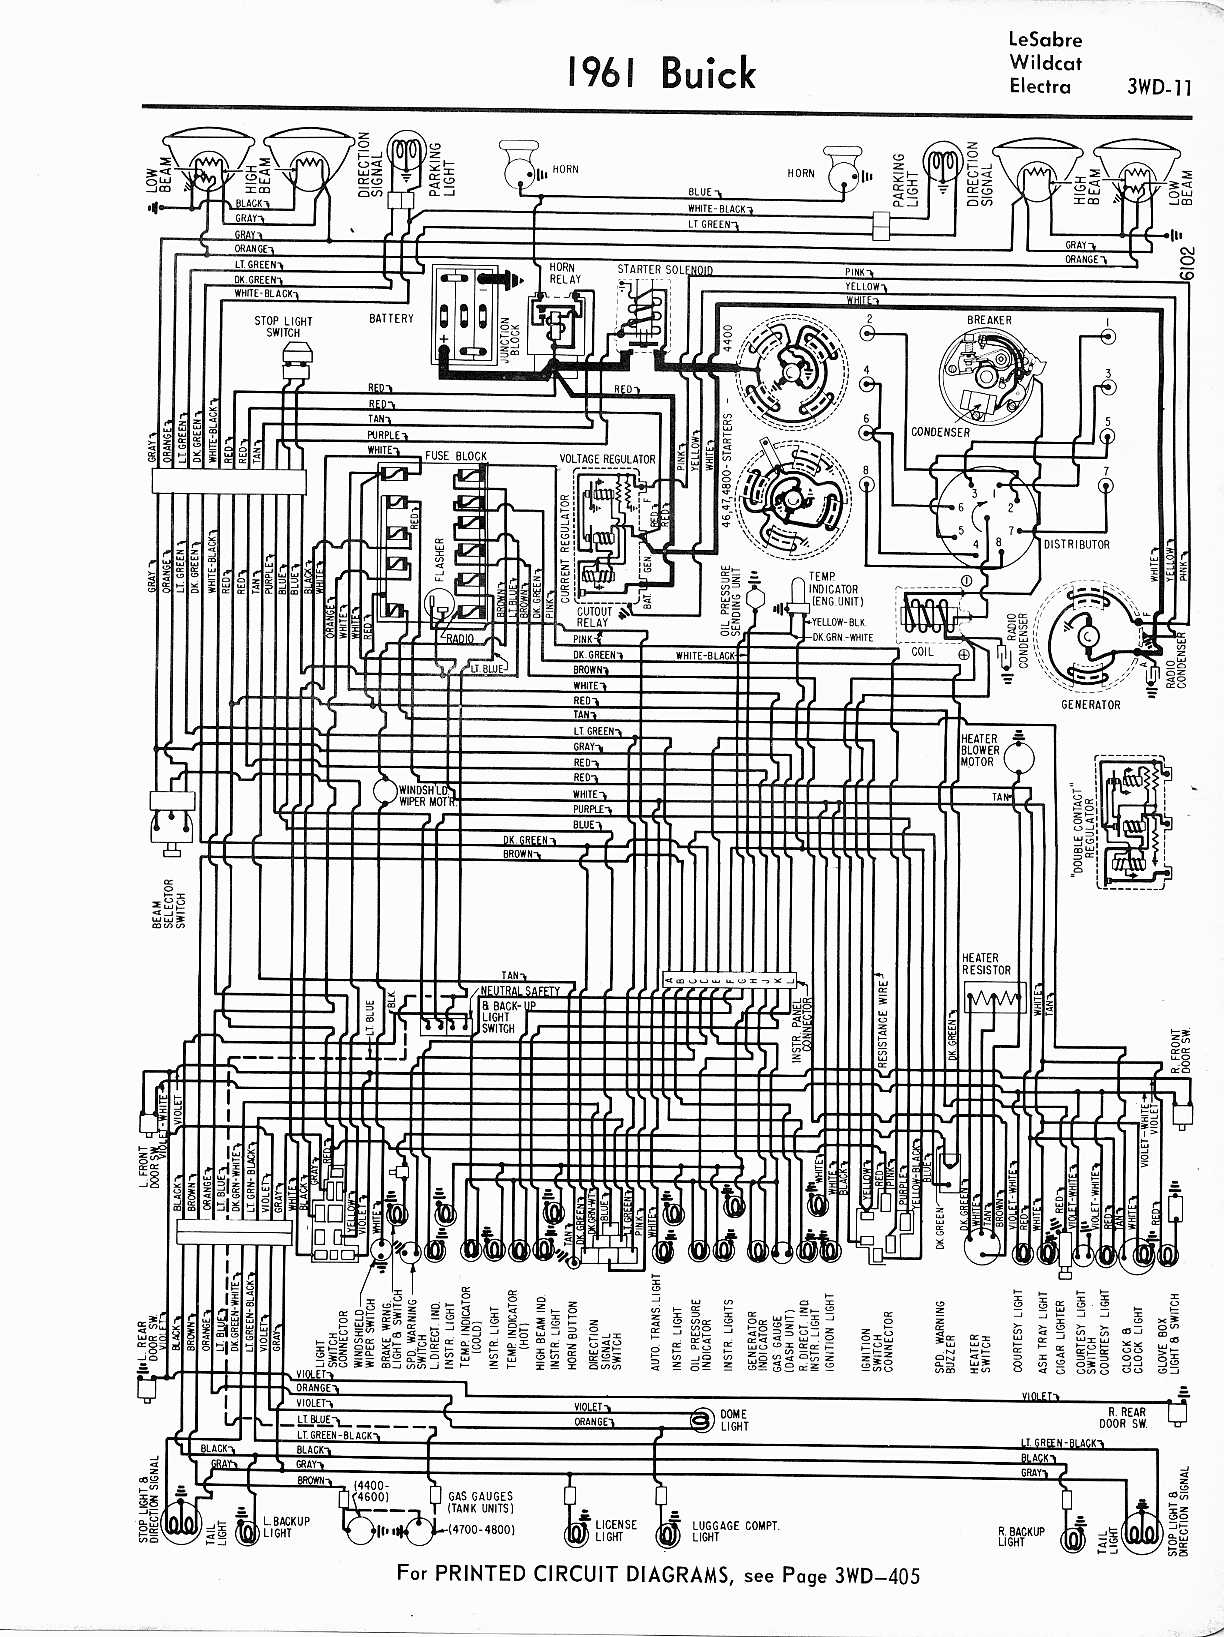 1997 Buick Century Headlight Wiring Diagram Reinvent Your Jeep Cherokee Fuse Box Diagrams 1957 1965 Rh Oldcarmanualproject Com Lesabre Parts